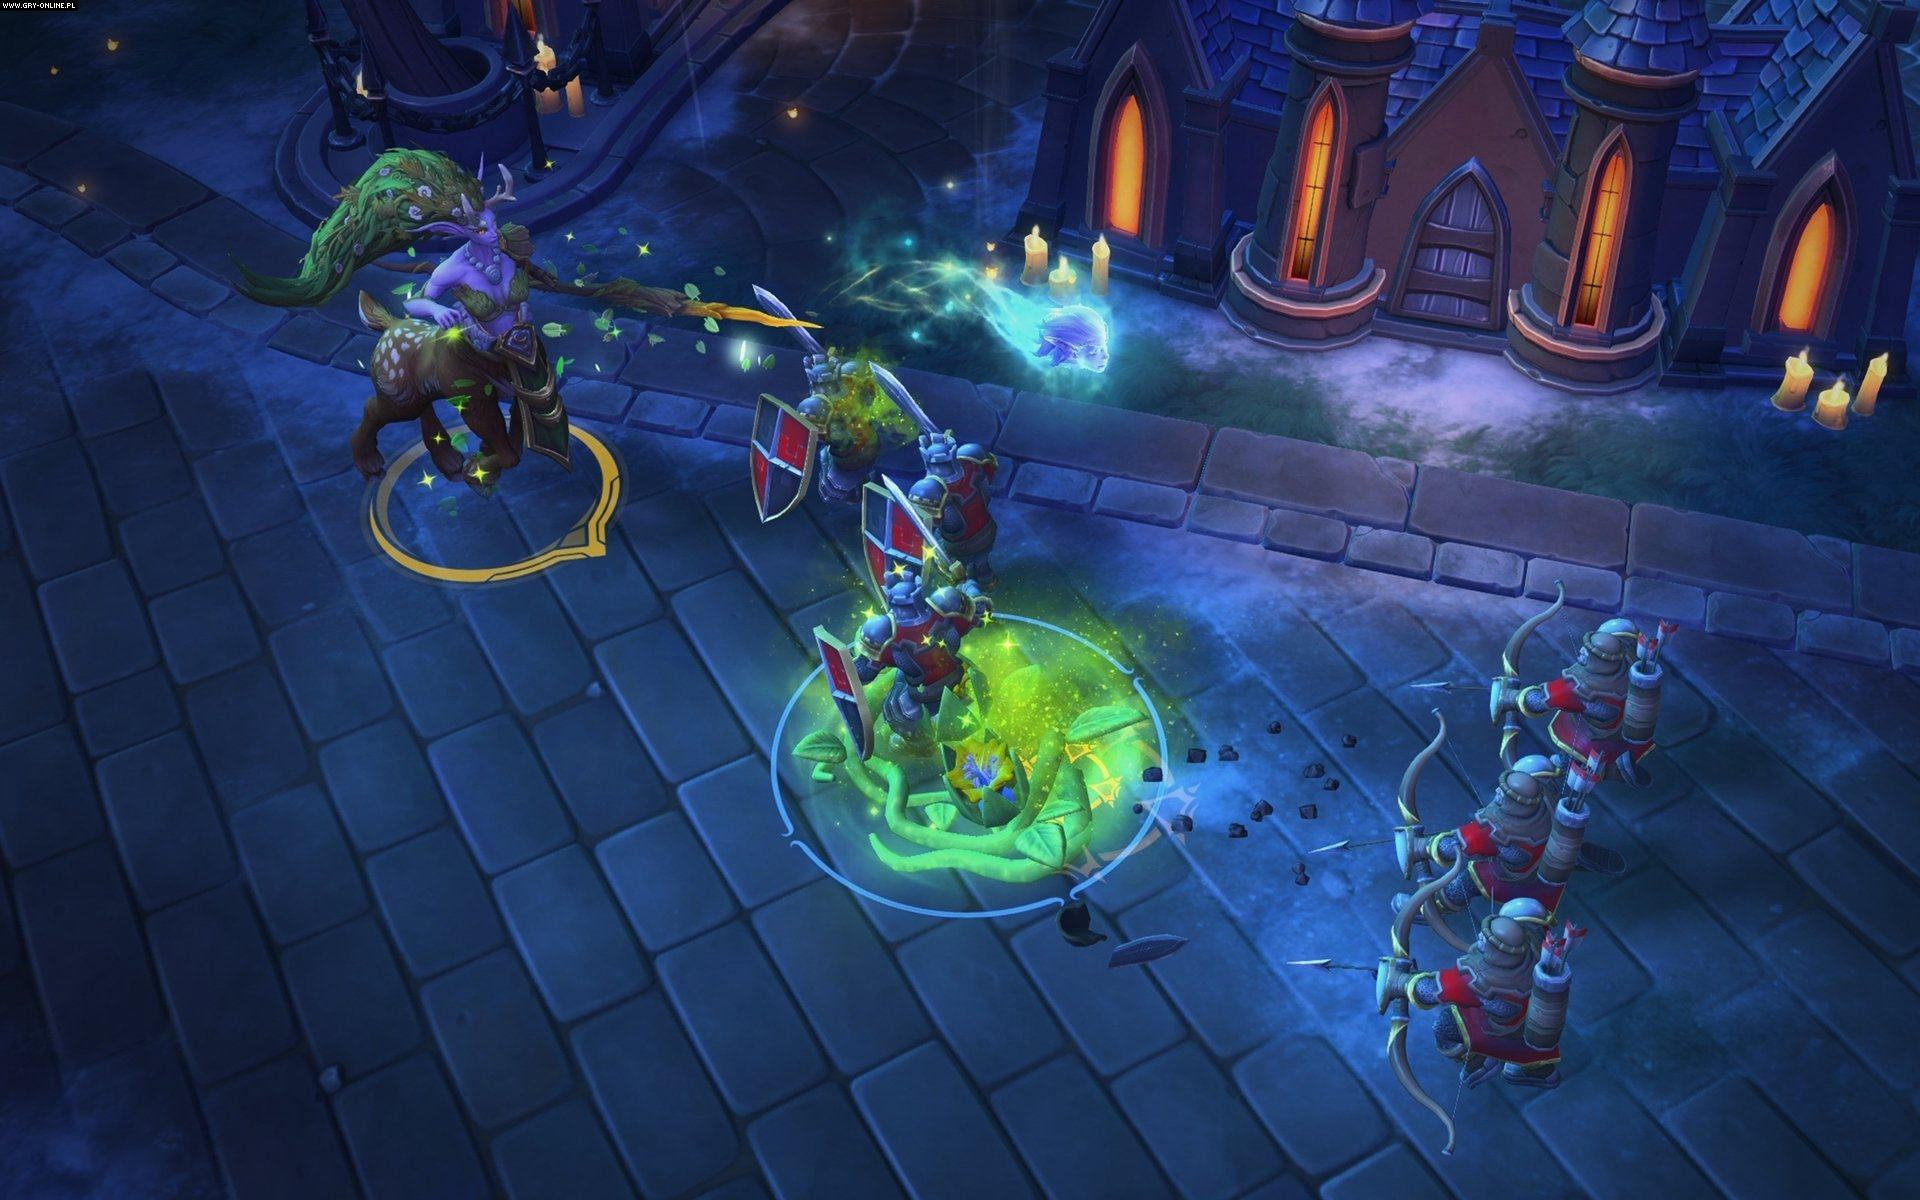 Heroes of the Storm image #8